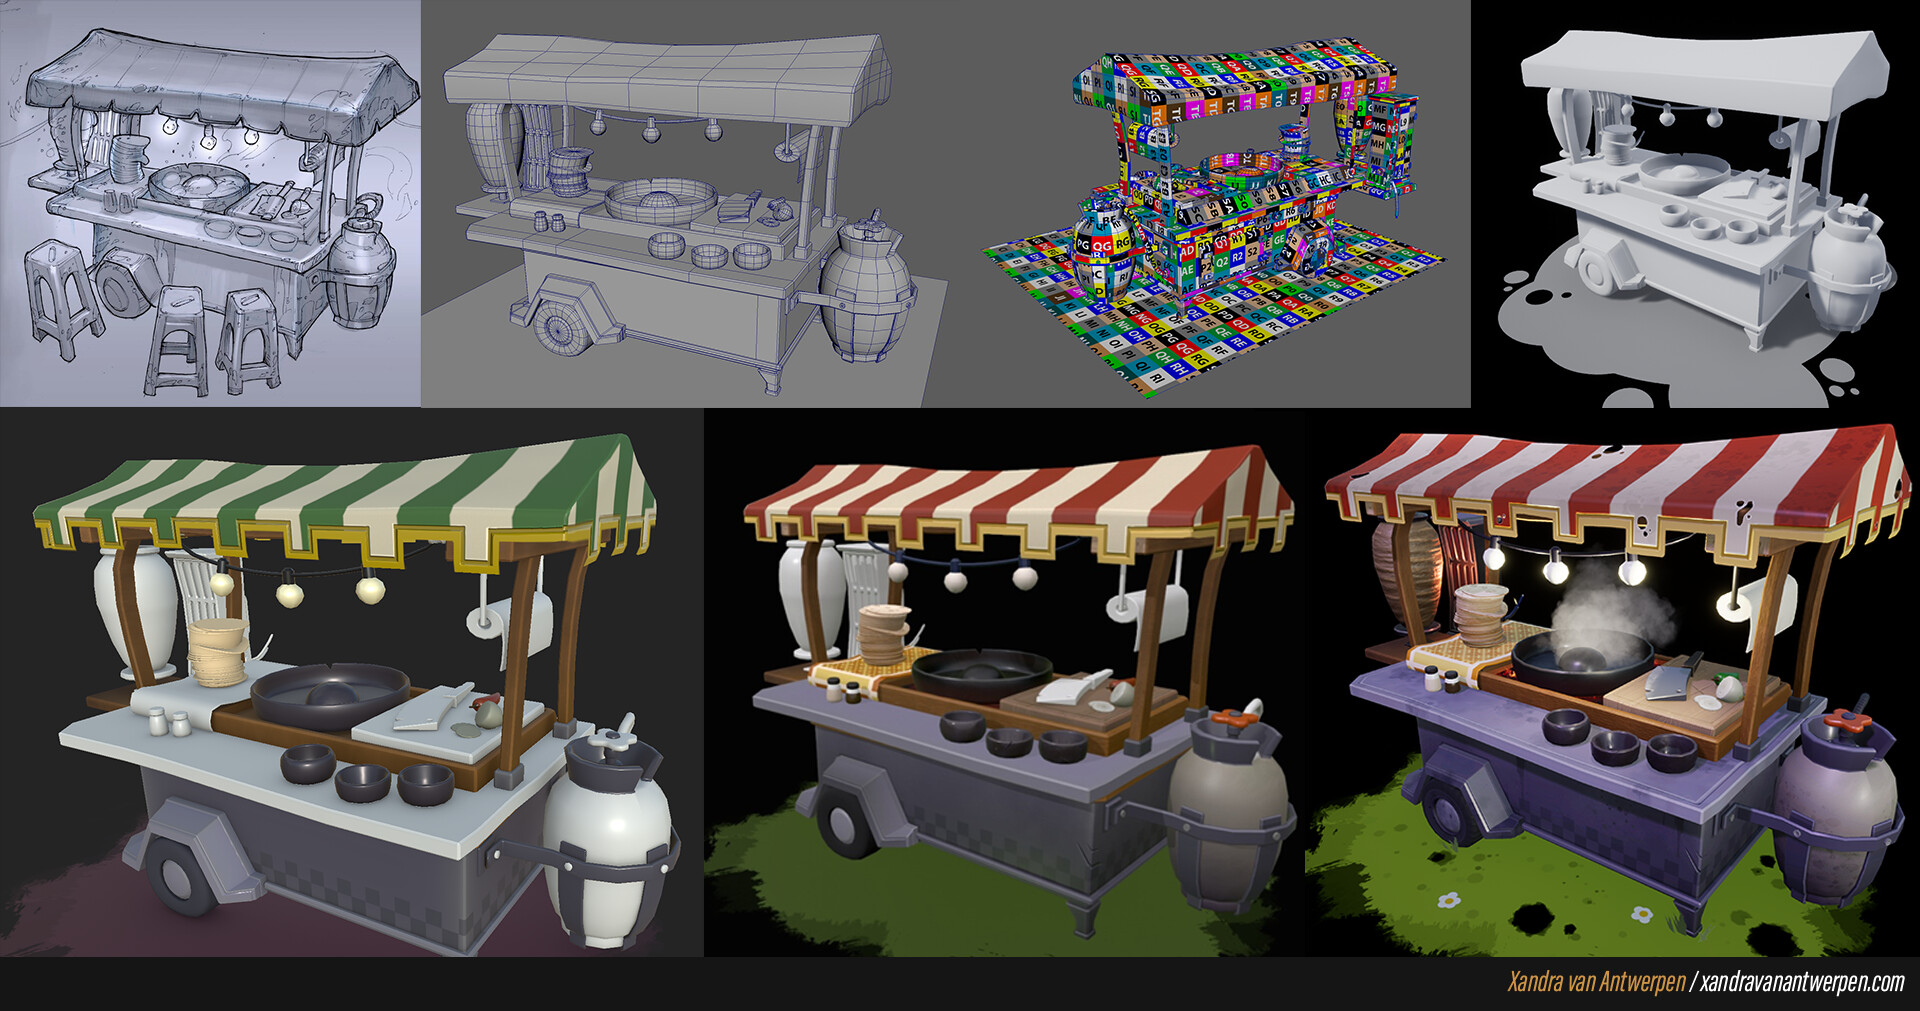 The process throughout the creation of the stand. For each step I continiously asked for feedback from different sources.